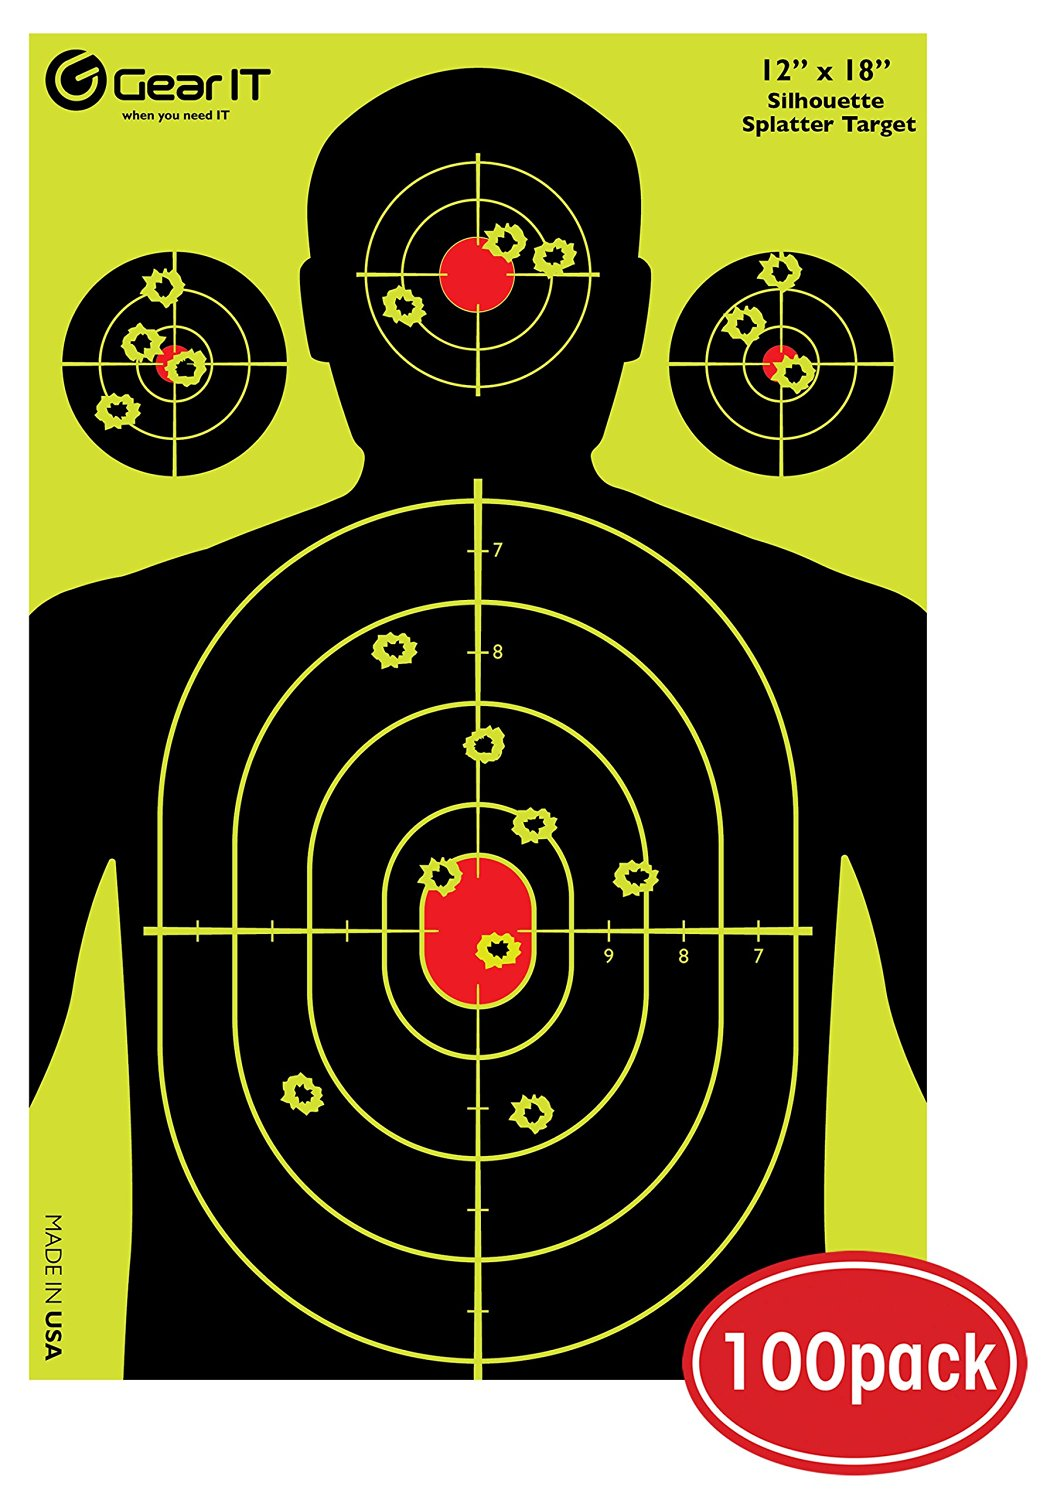 ASG SHOOTING TARGETS 100 PACK AIRSOFT RIFLE TARGETS 14X14CMS